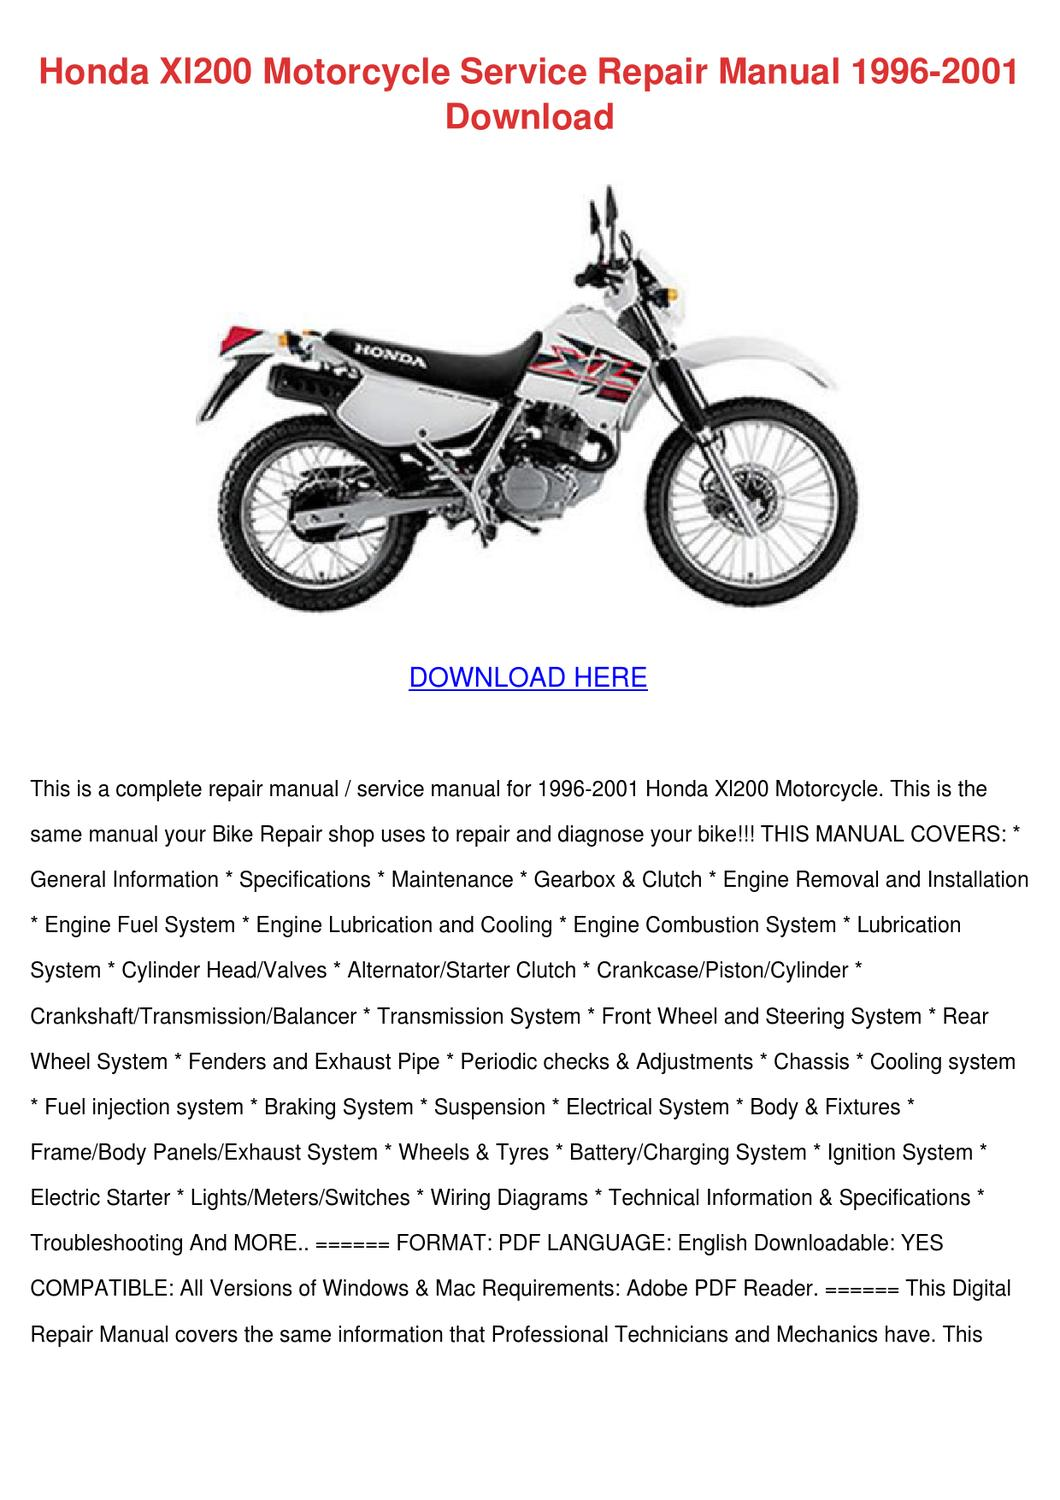 Honda Xl200 Motorcycle Service Repair Manual by PeggyPaulk